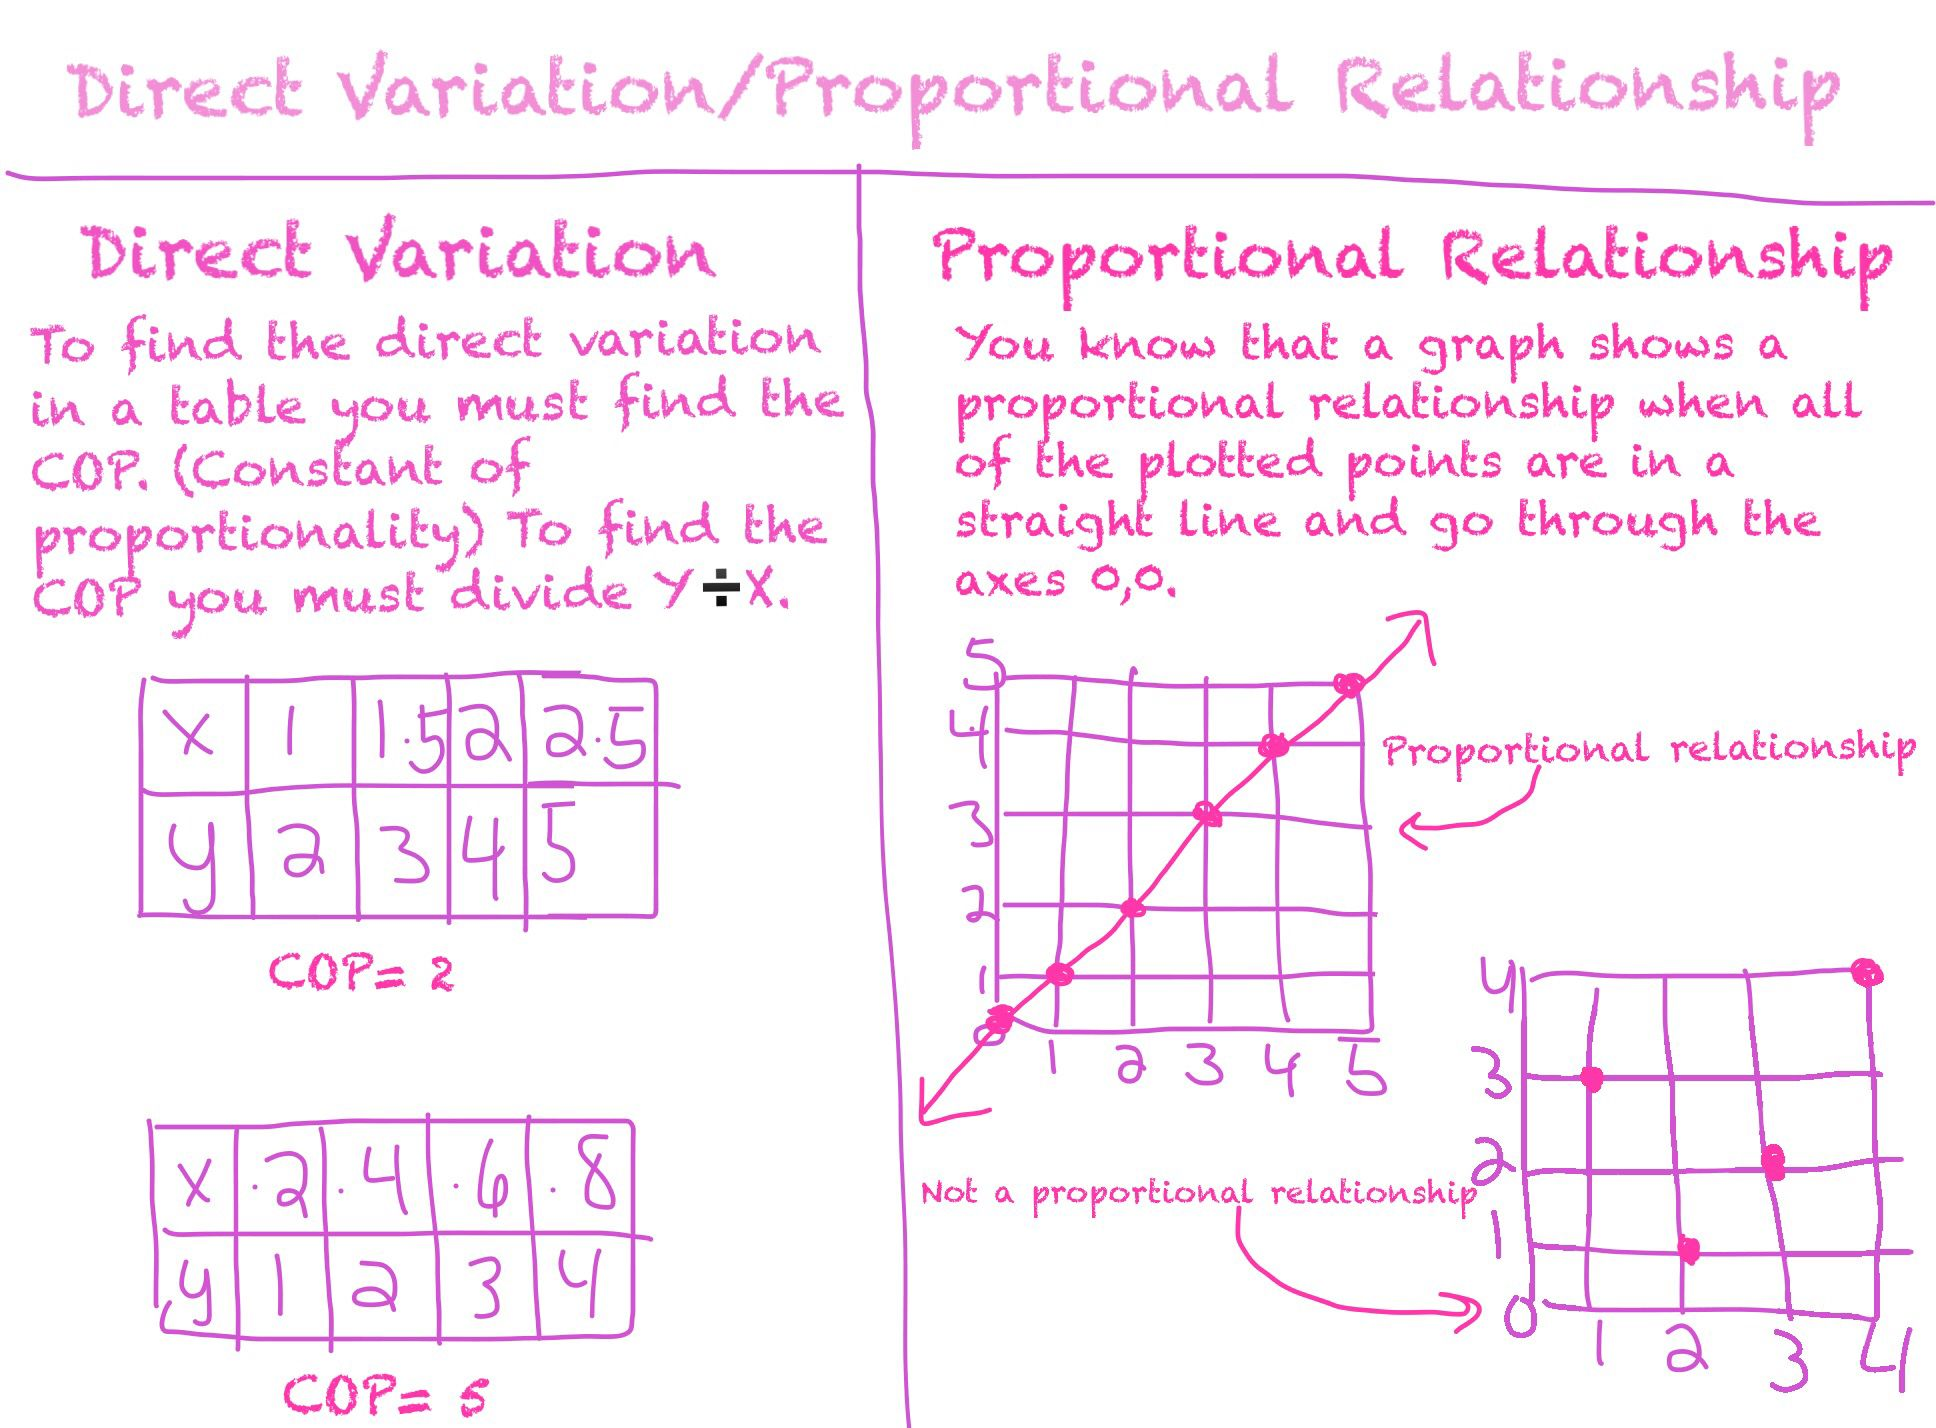 Direct Variation Proportional Relationship